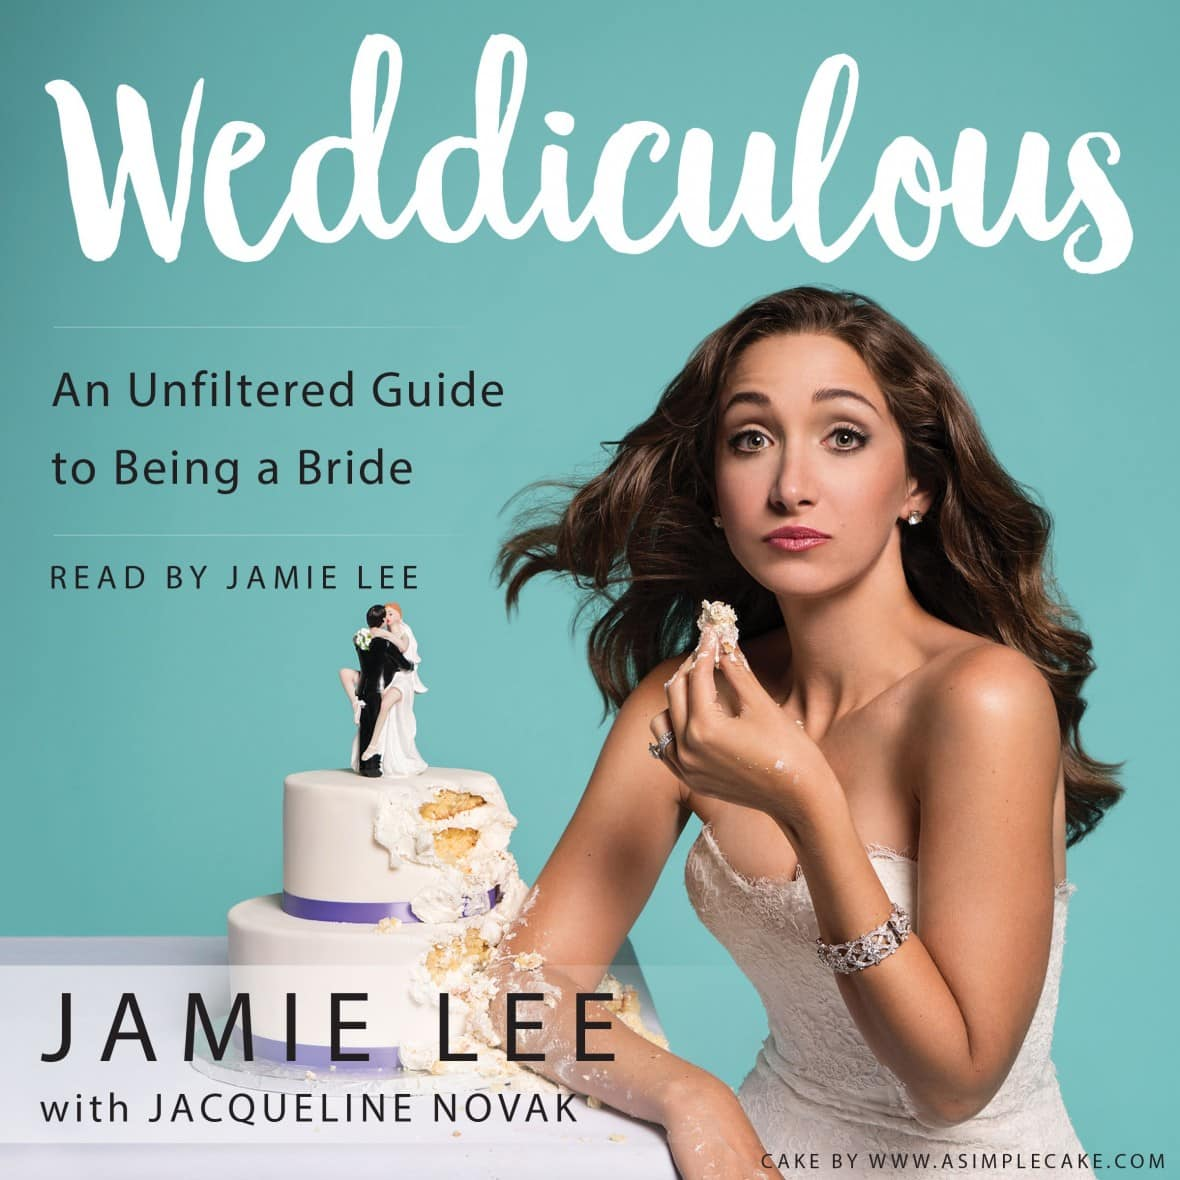 Today only get a free wedding audiobook of Weddiculous by Jamie Lee via Audiobooks.com app! Download the app and your free wedding audiobook today!